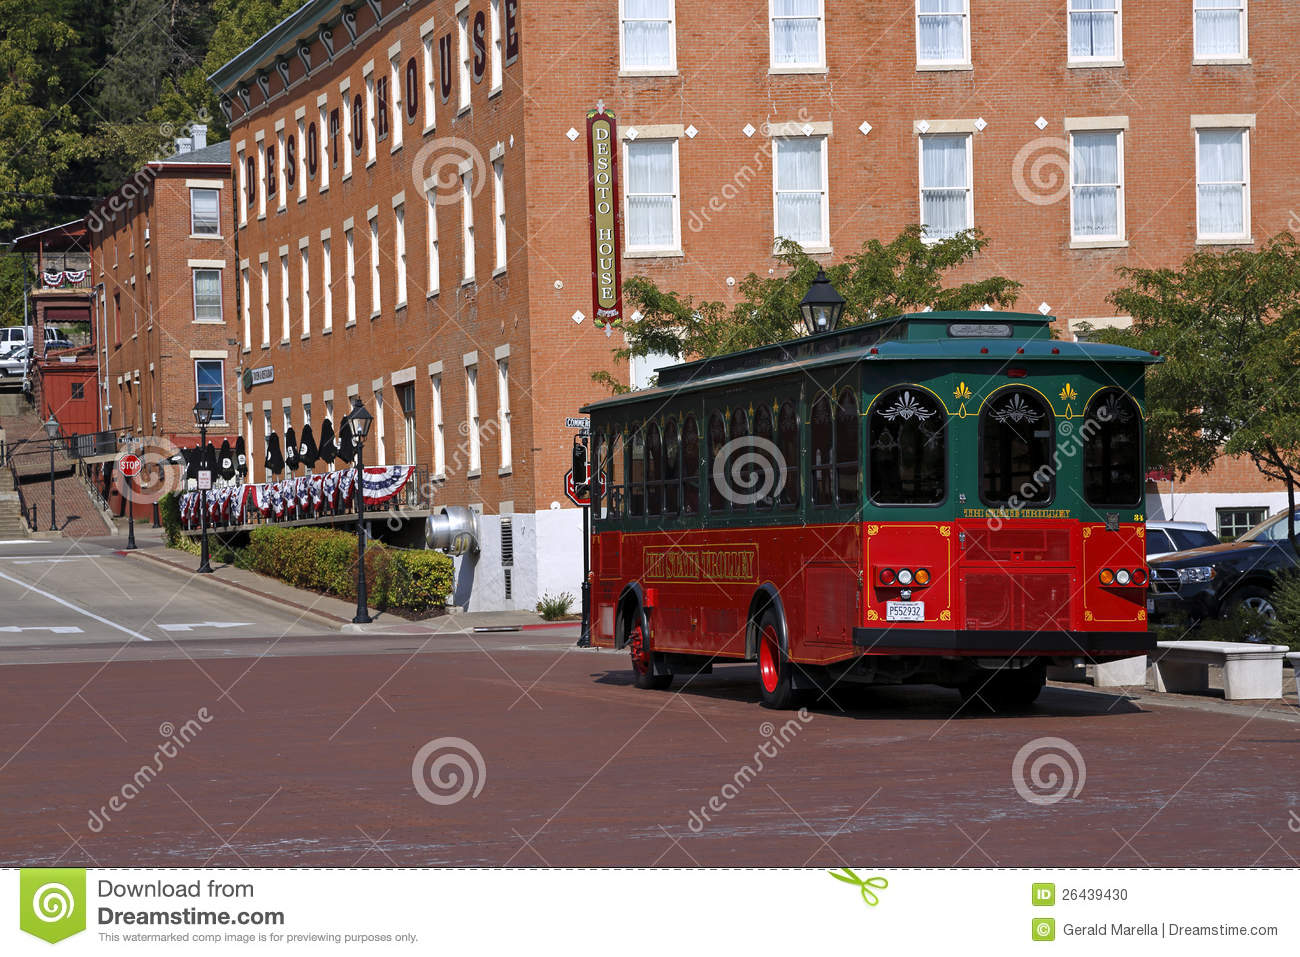 Trolley and DeSoto House Hotel in Galena, Illinois